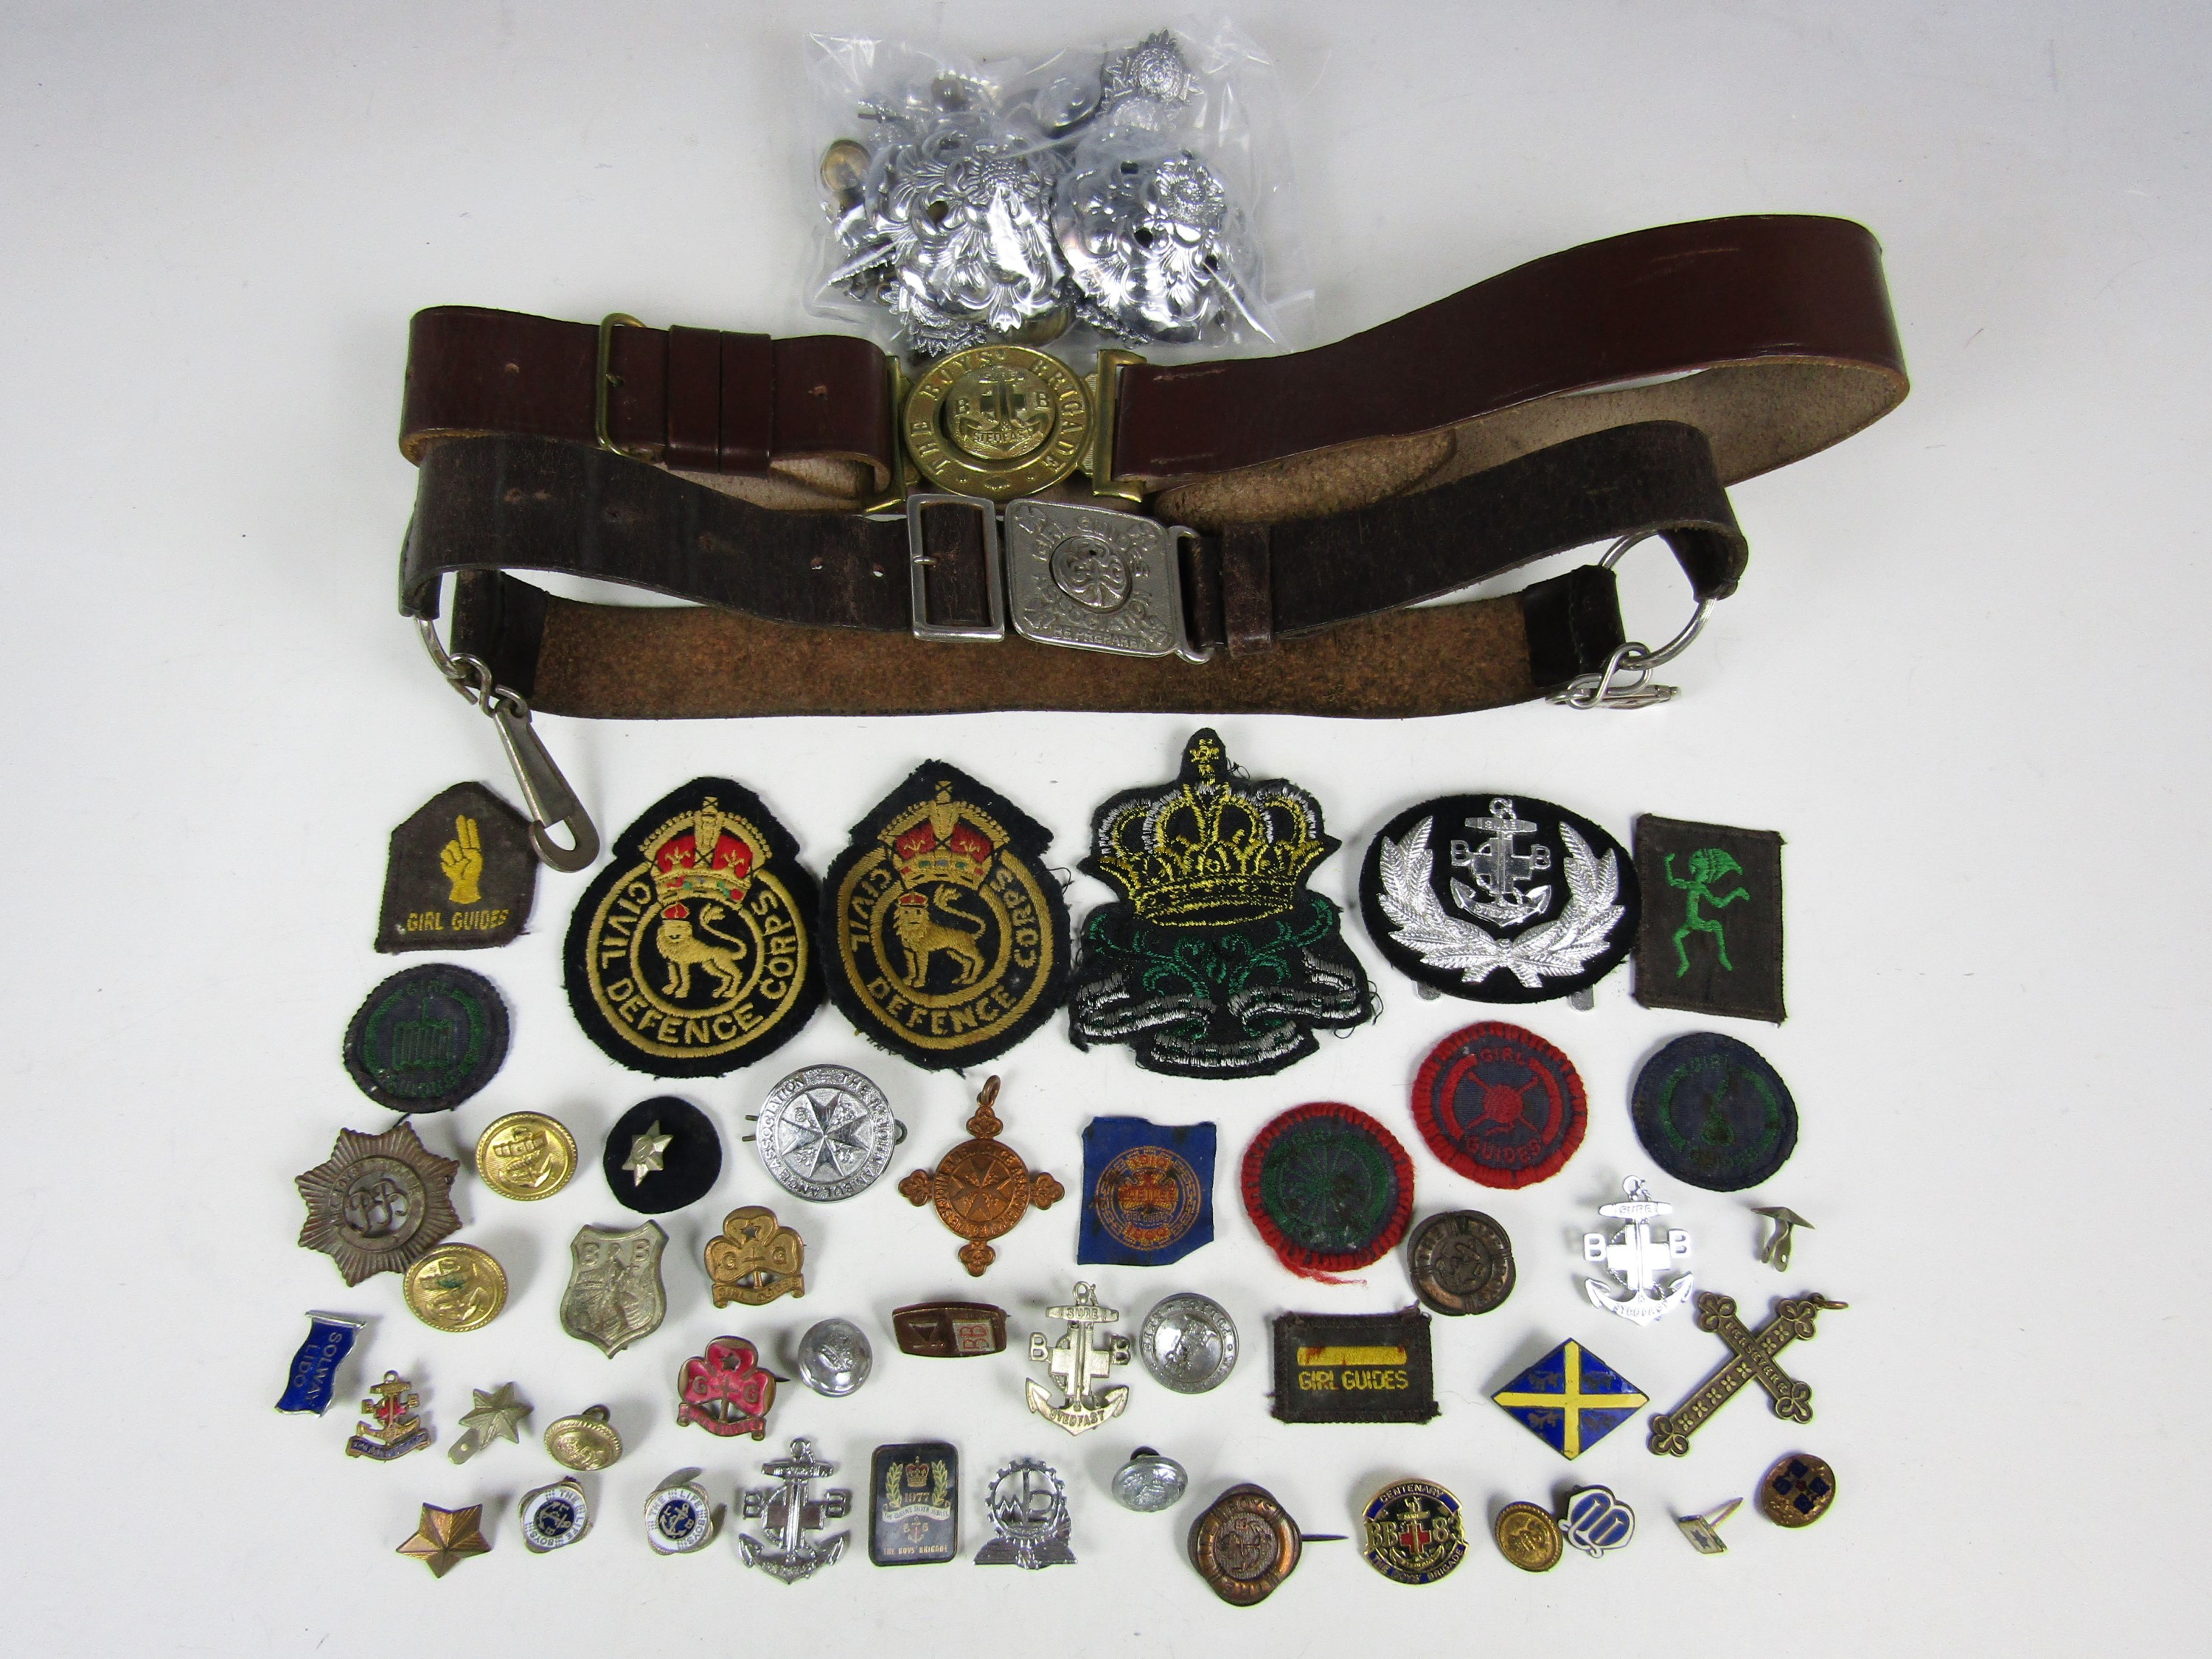 Lot 14 - [Girl Guides / Boys Brigade] Vintage belts, together with sundry cloth and lapel badges etc.